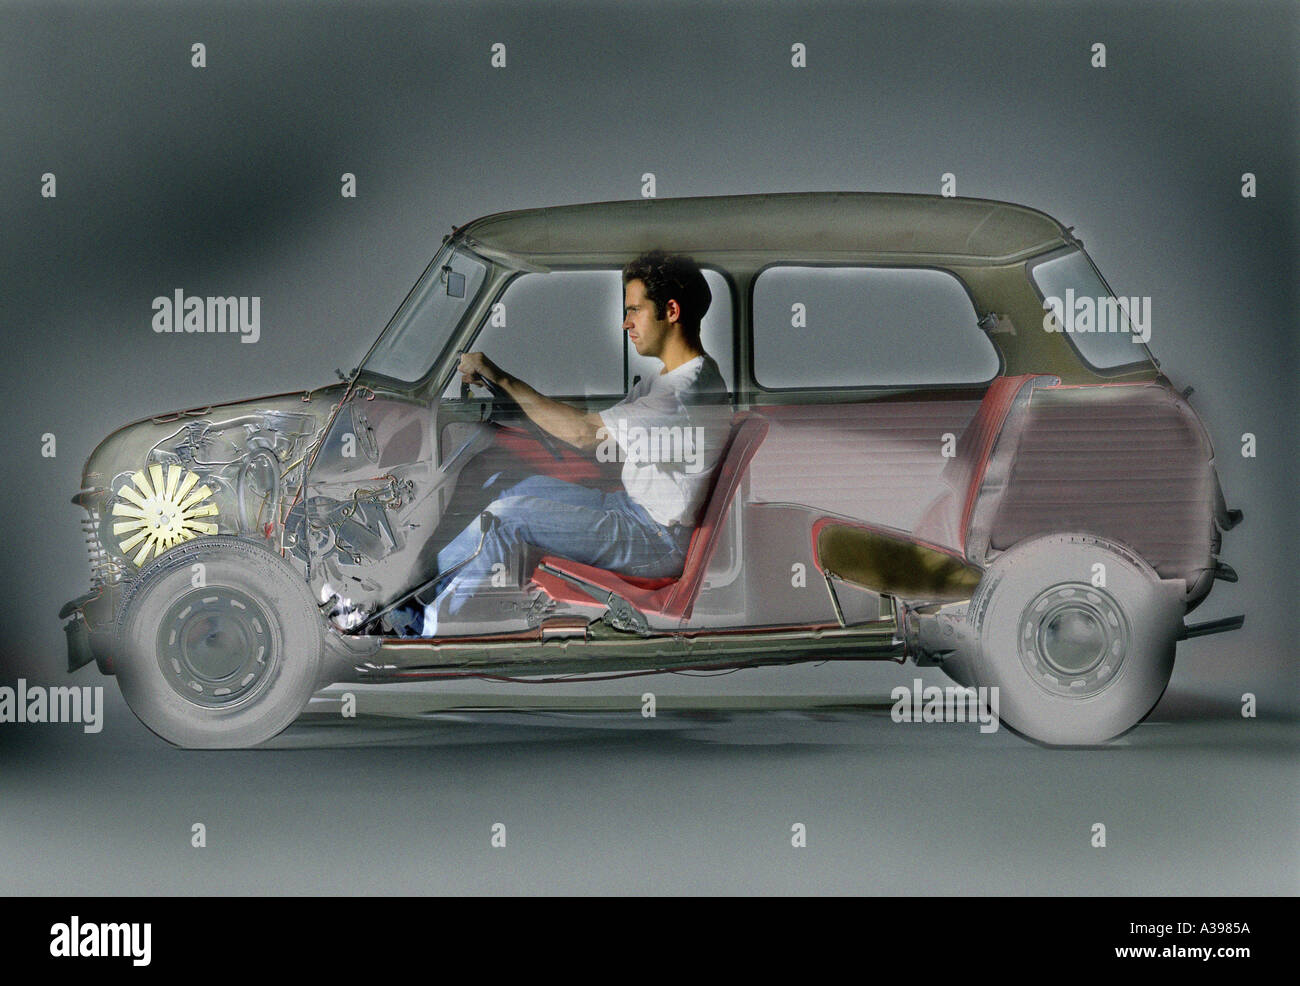 voiture x-ray Photo Stock